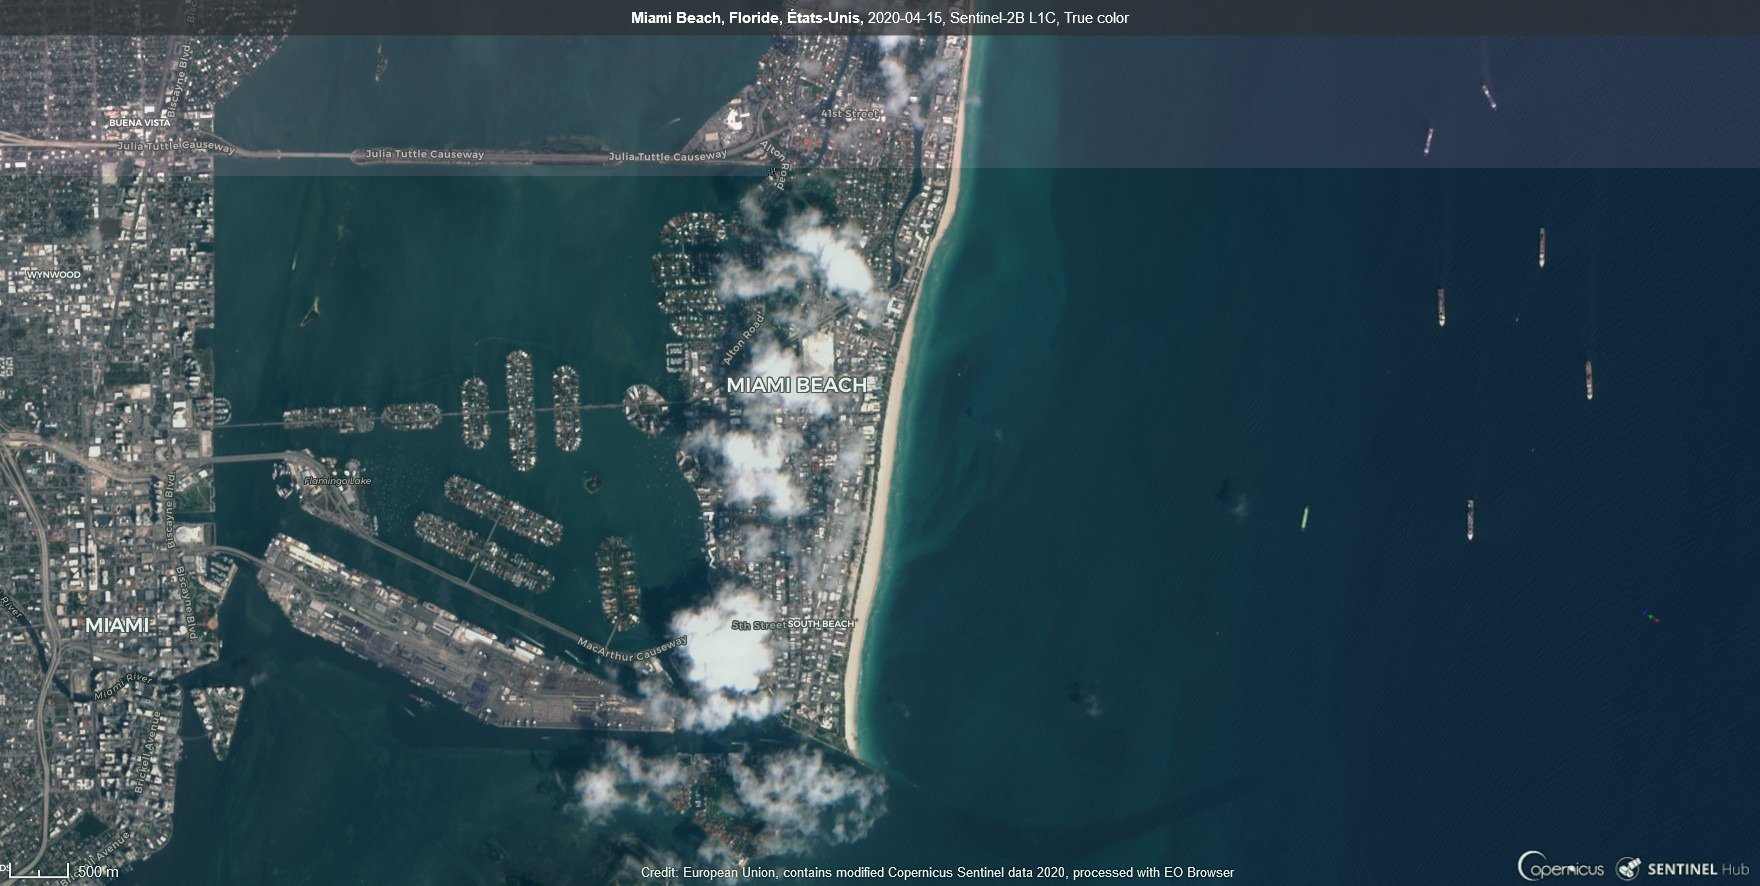 2020-04-15_sentinel-2b_l1c_miami_true_color.jpg